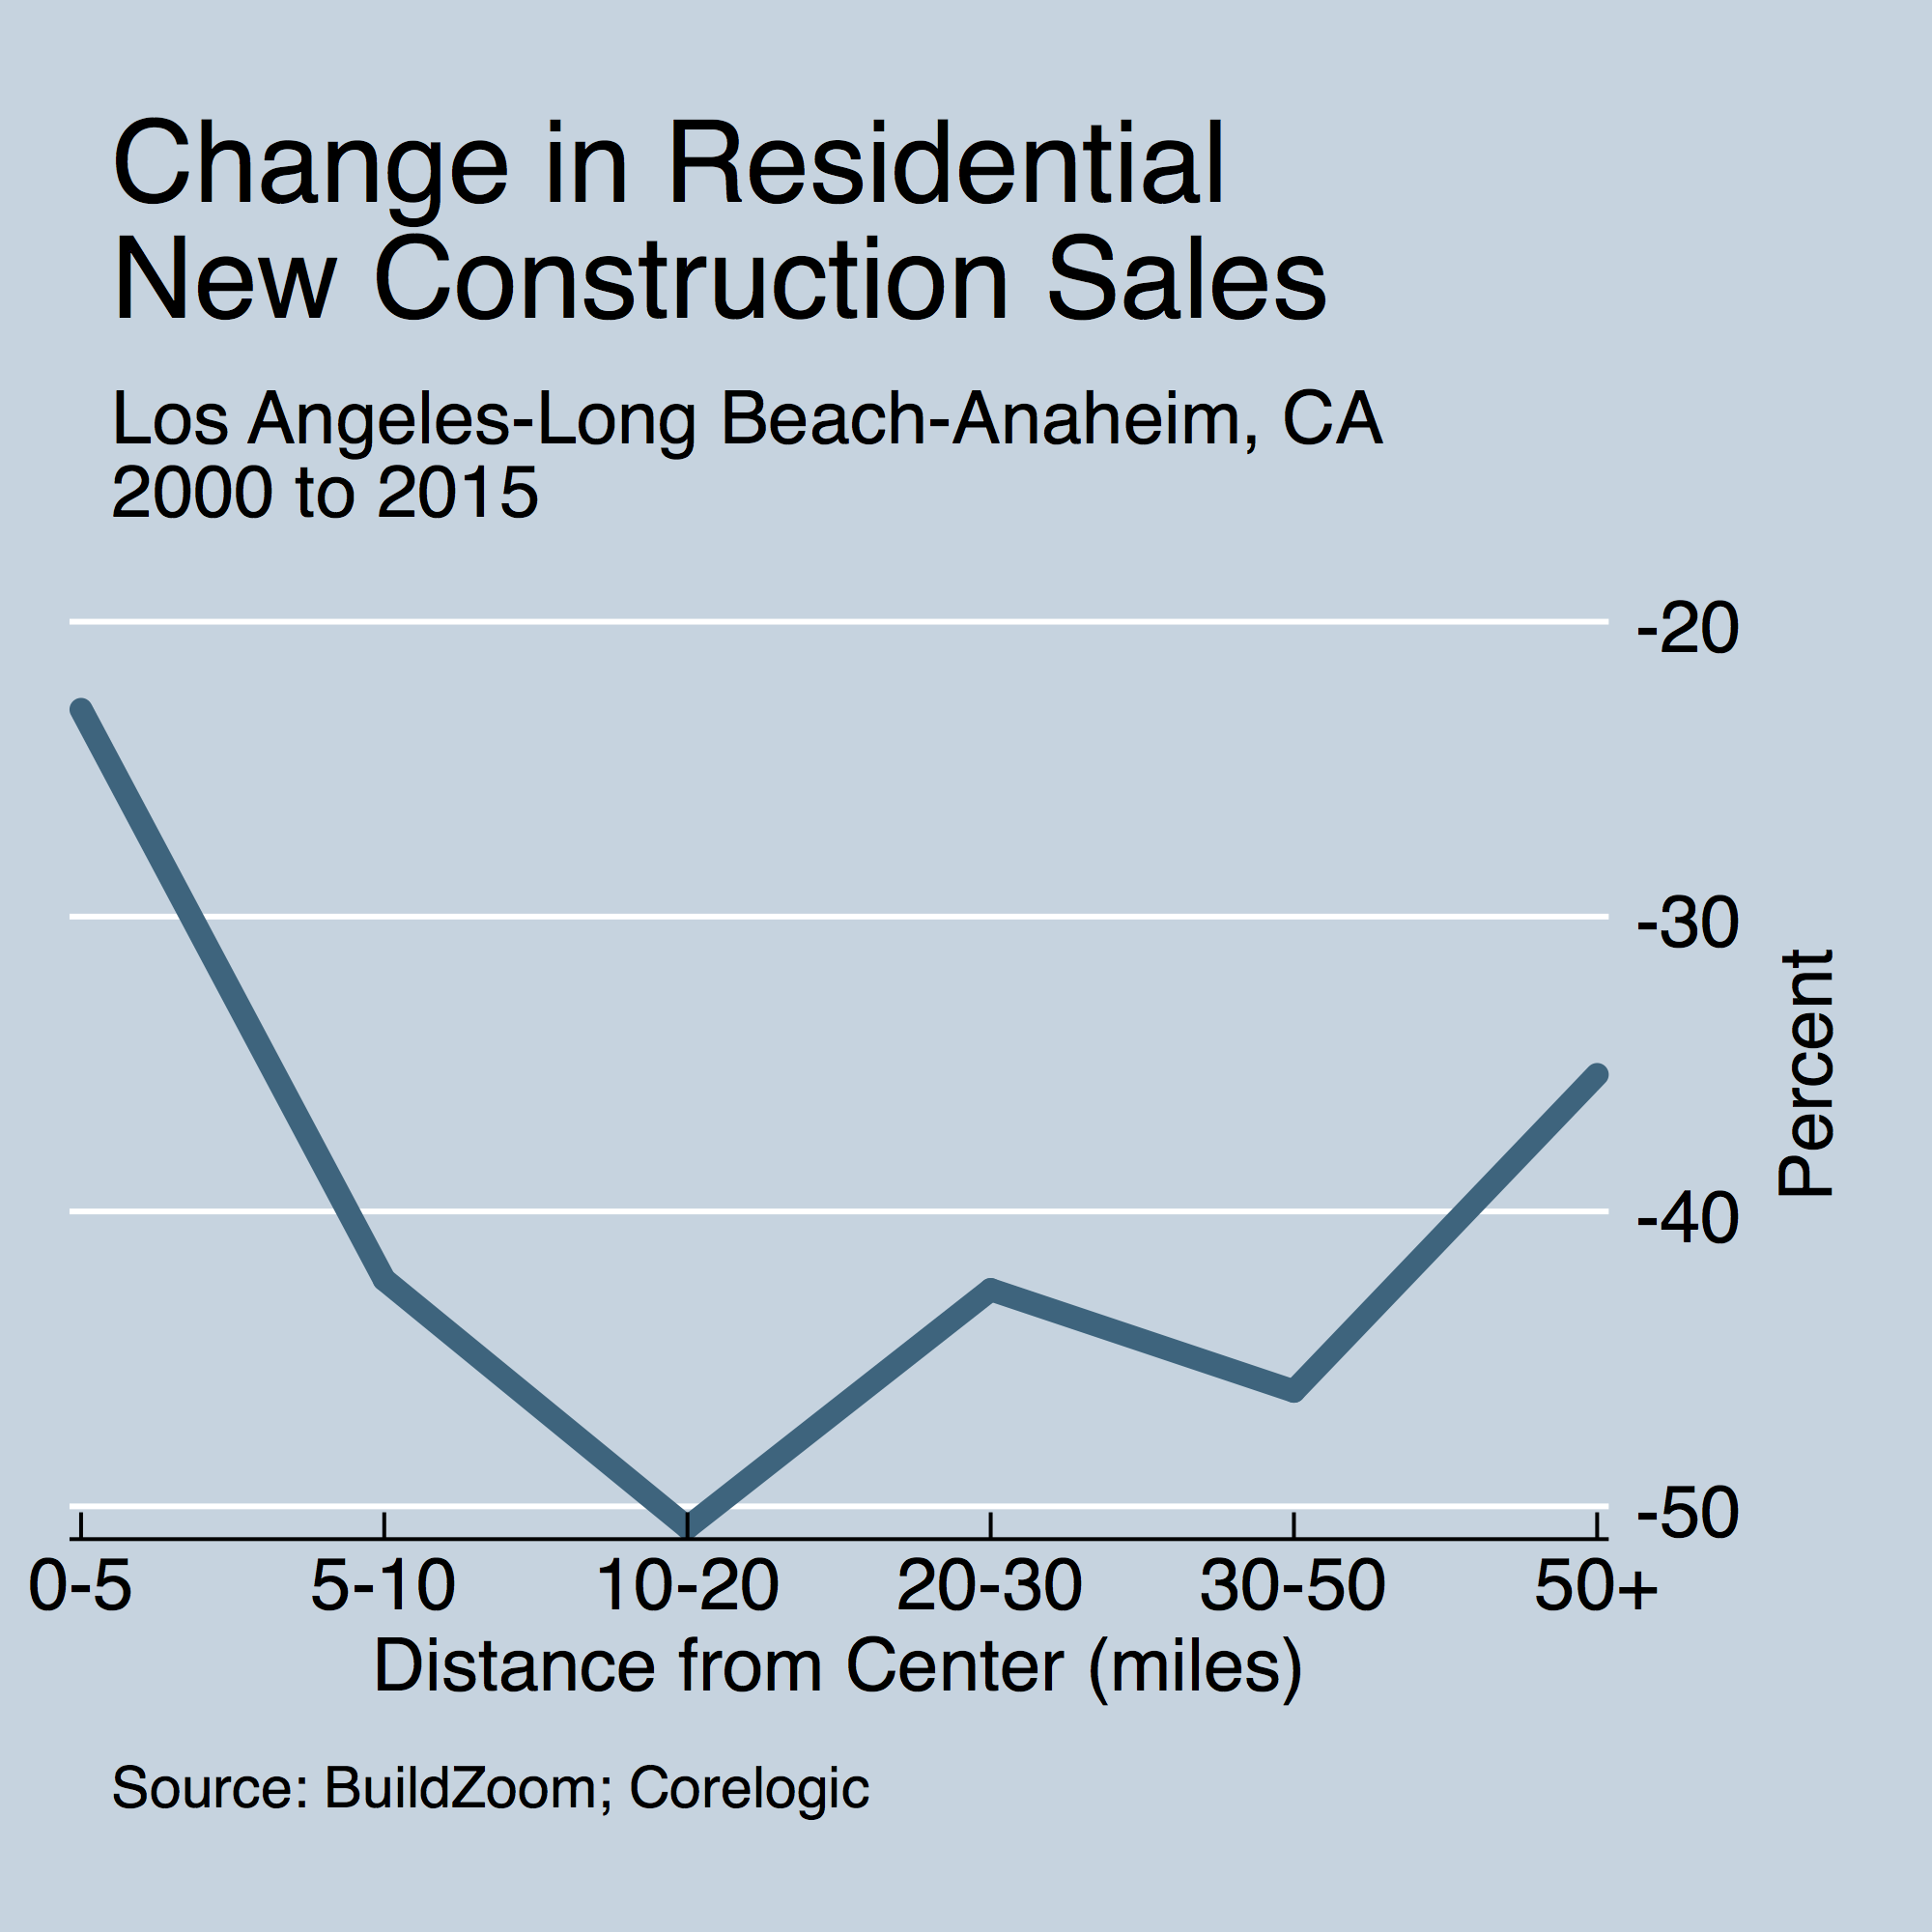 pct_change_15_vs_00_by_dist_to_cbd_newconstructionsales_los-angeles-long-beach-anaheim-ca